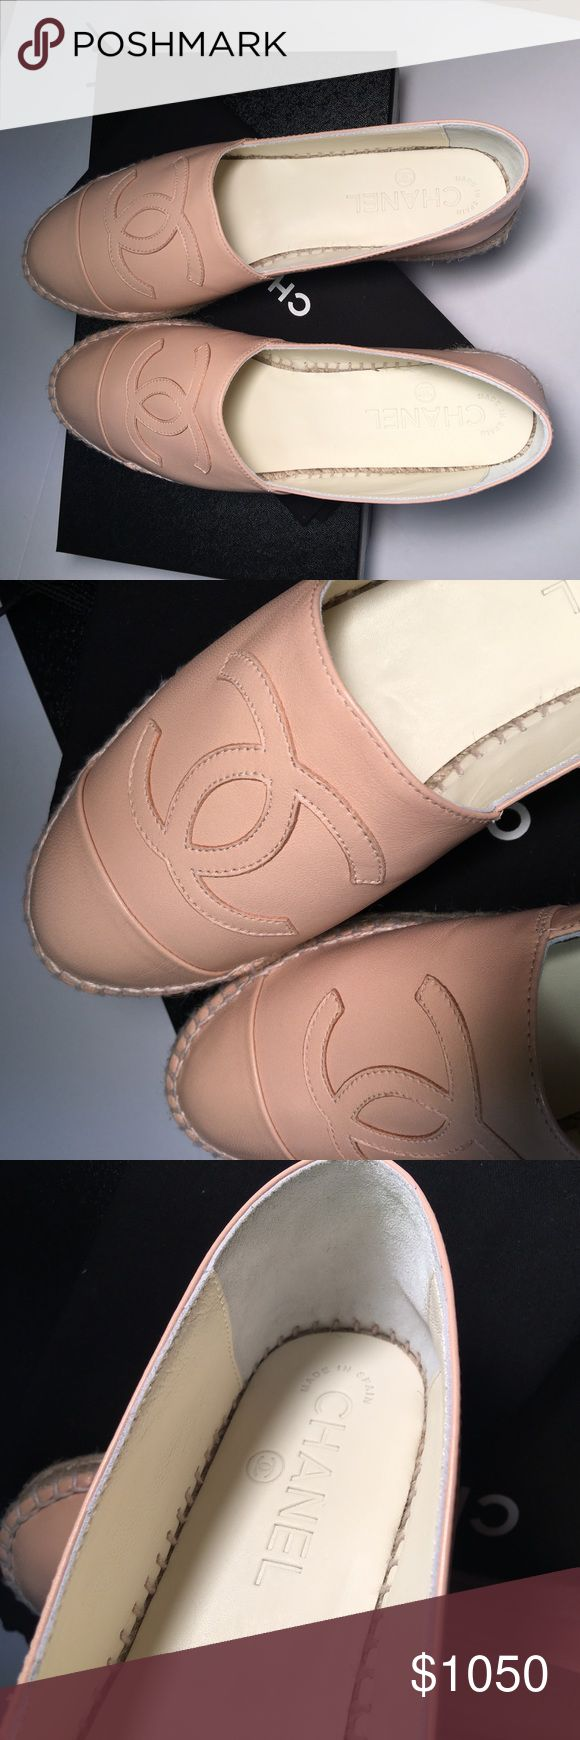 BN 2017 Chanel Espadrilles Nude Beige 2017 Brand New Chanel Nude Espadrilles in Lambskin Leather.  Size37/7, double sole.  Just released and sold out immediately in stores.   Comes with Chanel box, dust bags, care booklet and receipt upon request.  Ships ASAP!  No trade please.  Thank you CHANEL Shoes Espadrilles